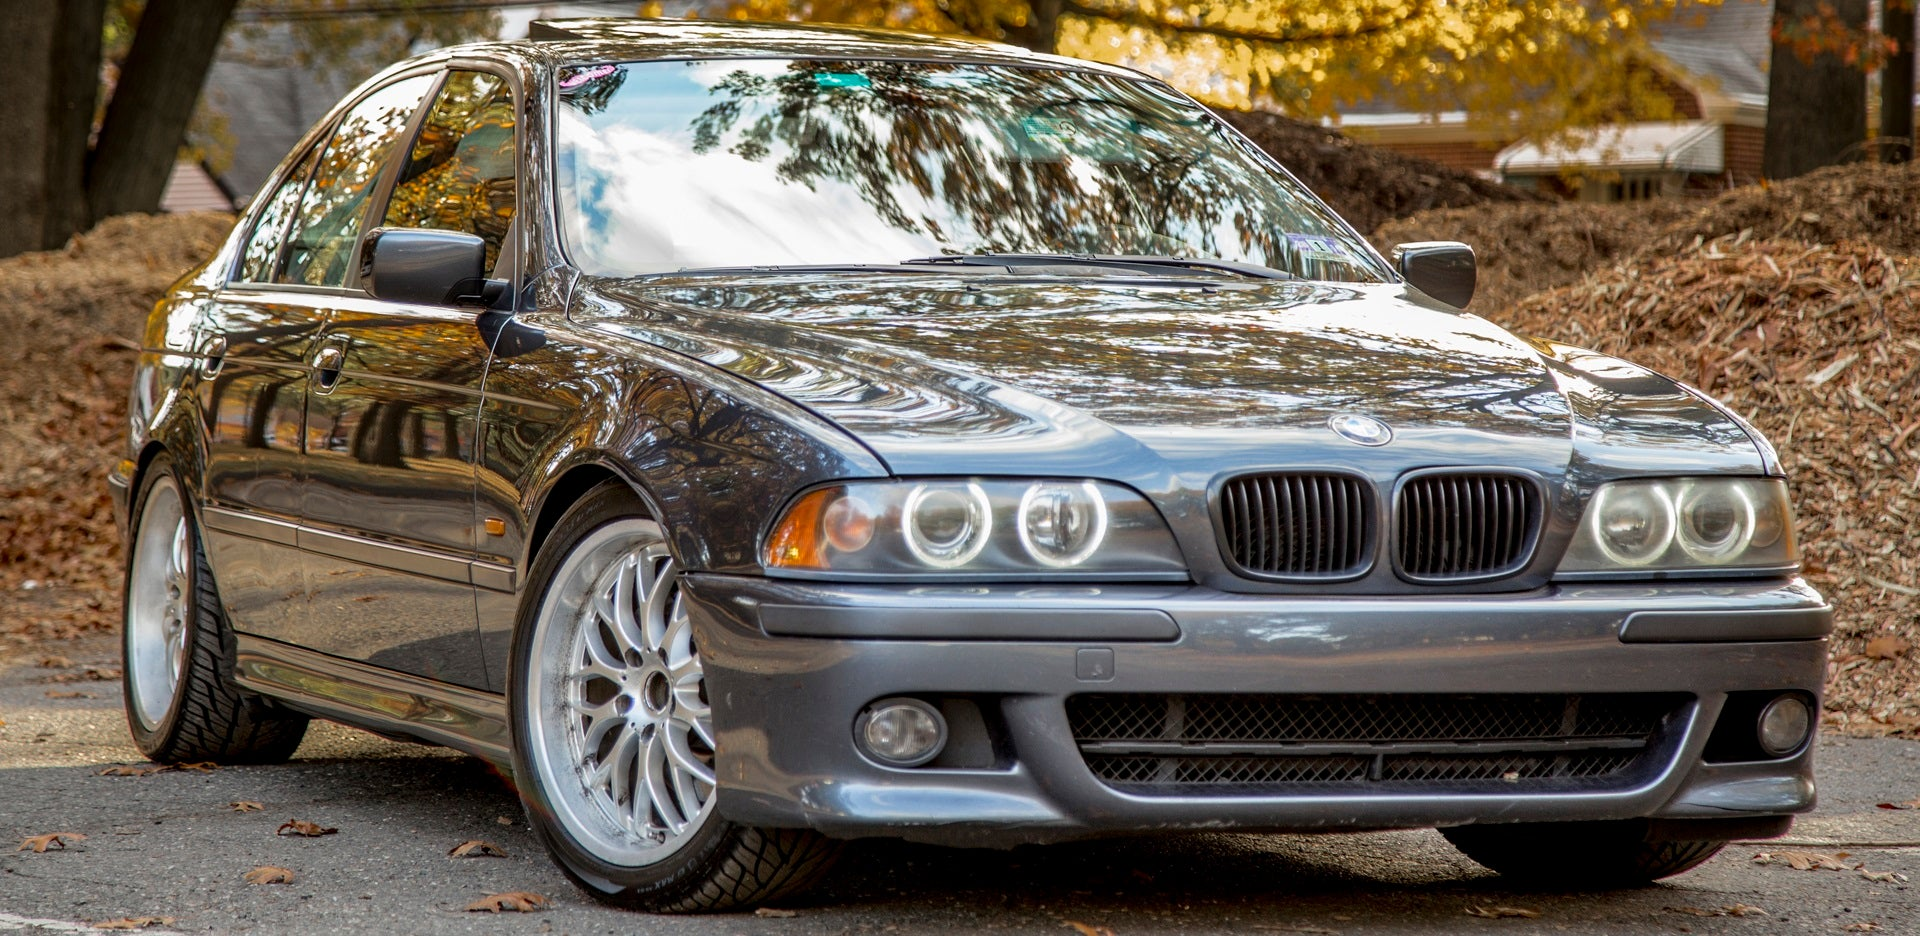 Want A Used Bmw Interesting Article On The E39 540i